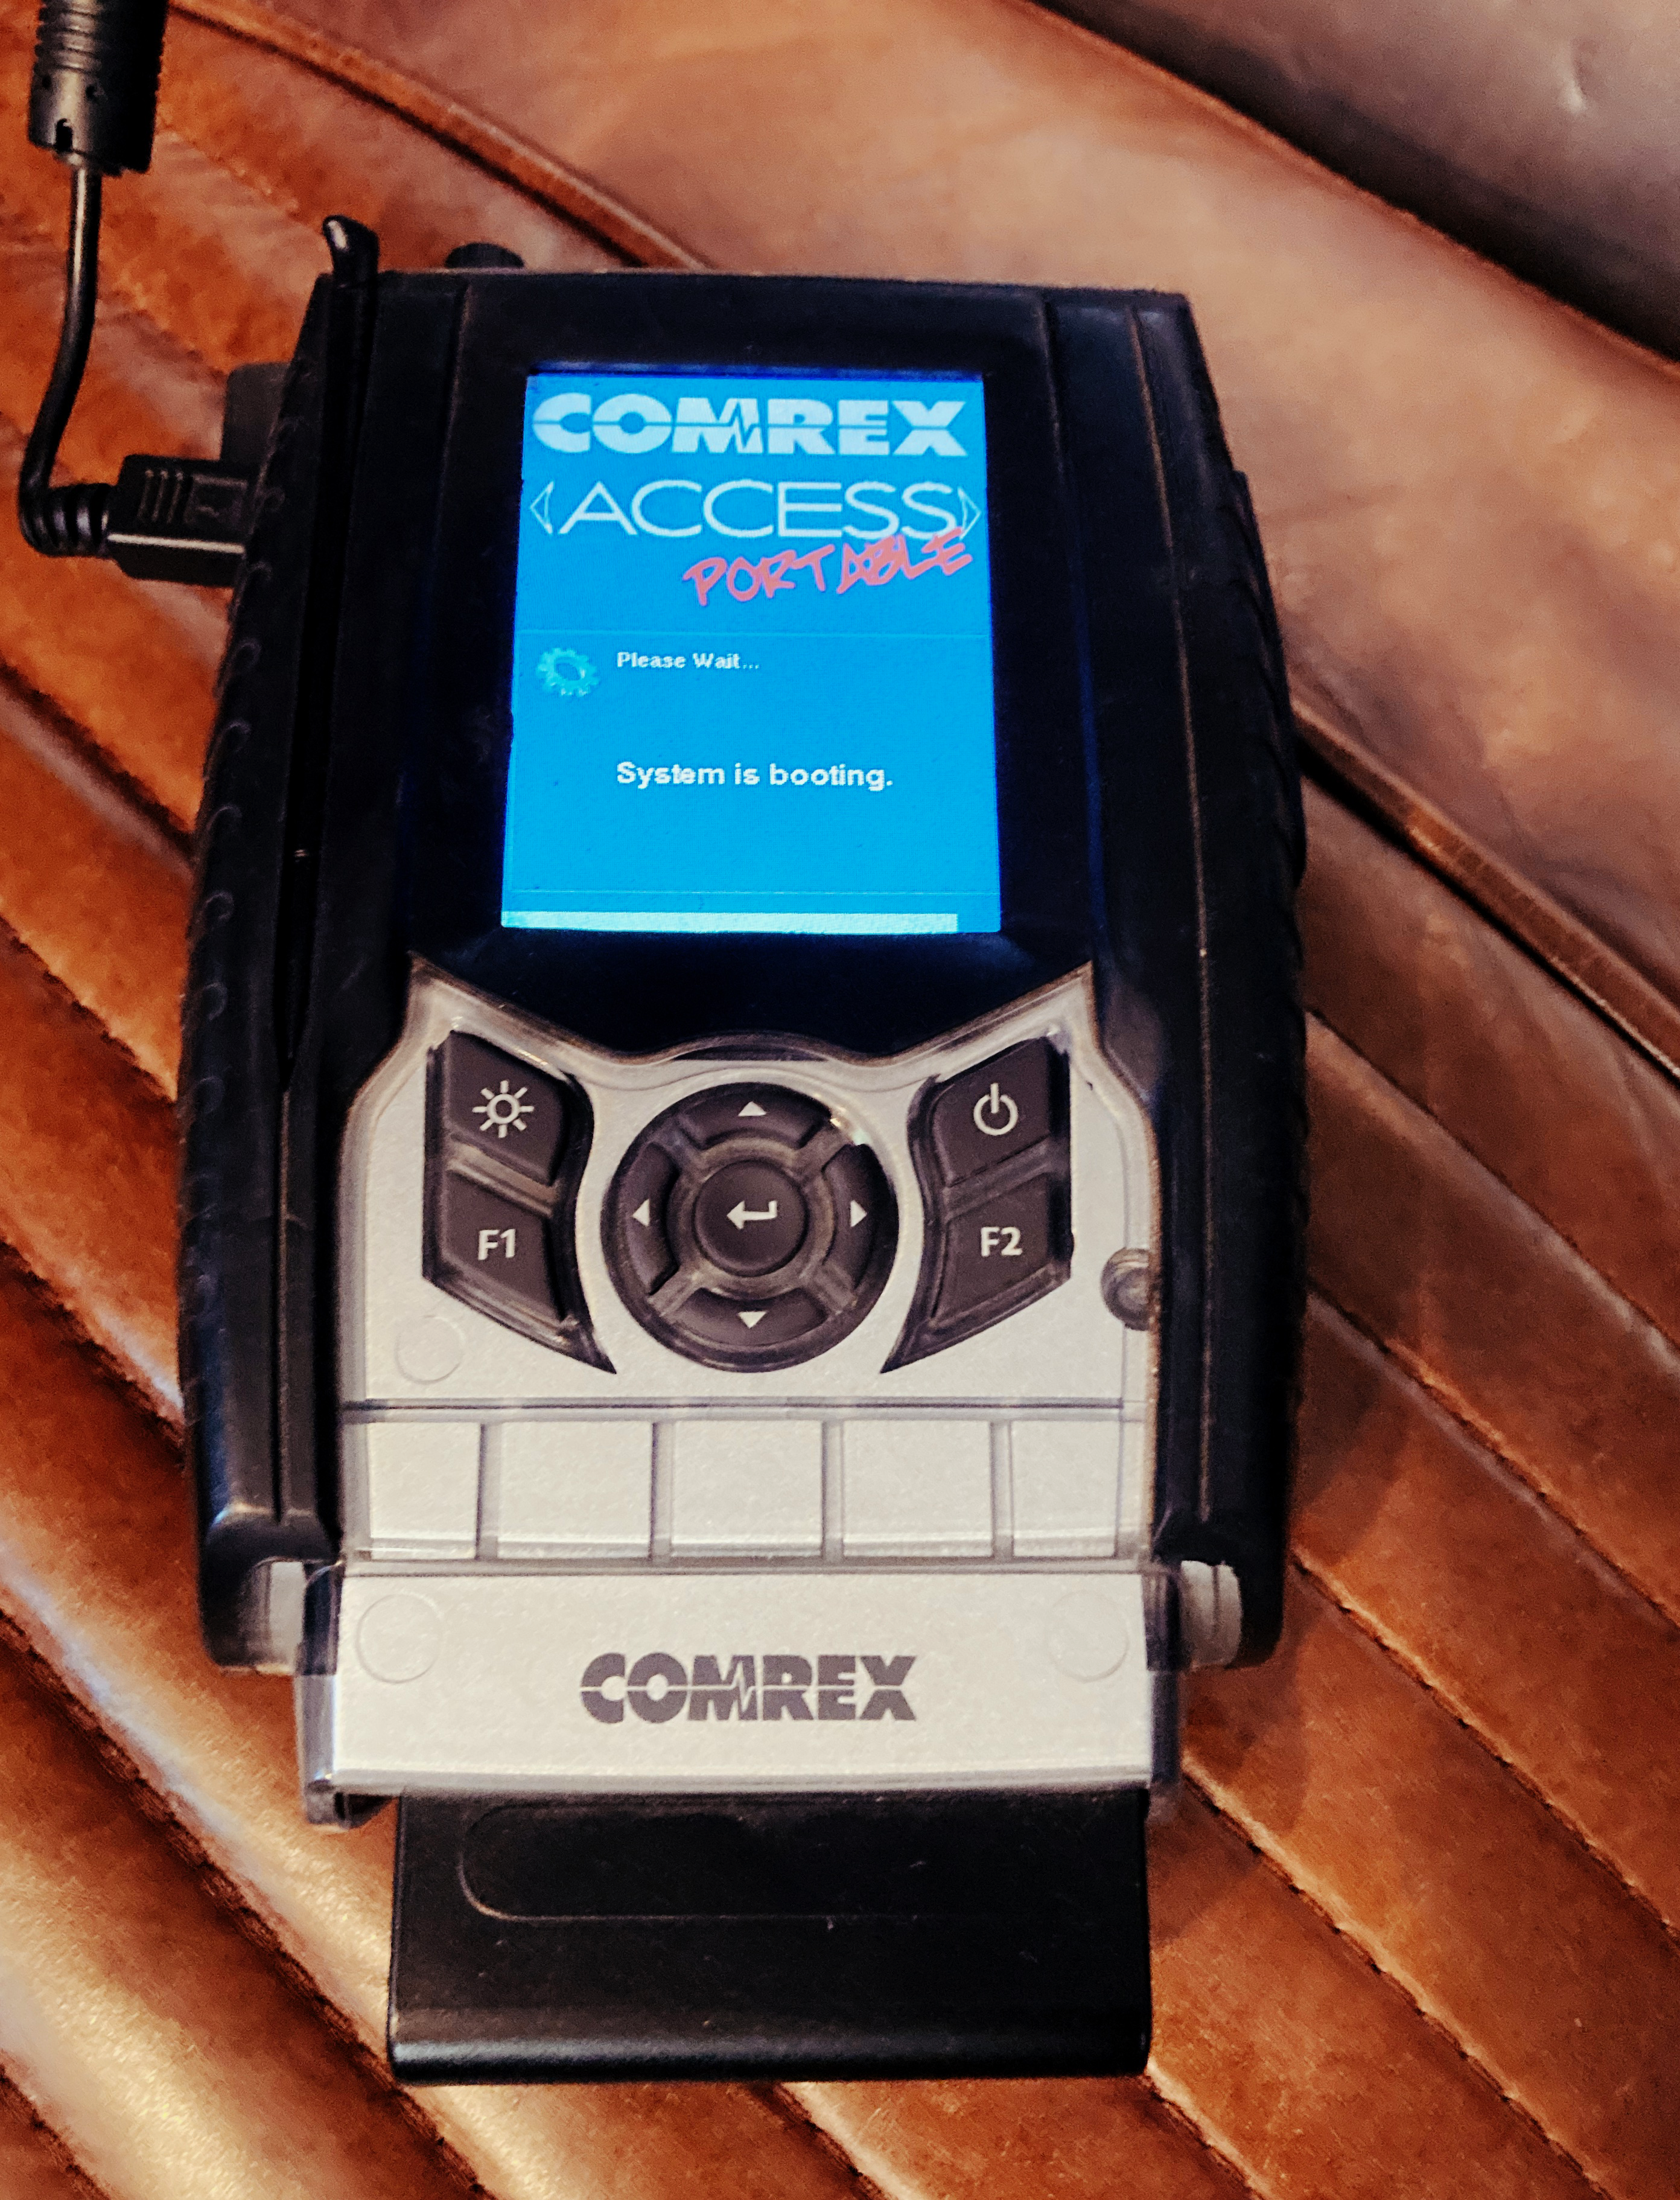 A Comrex Access2 unit